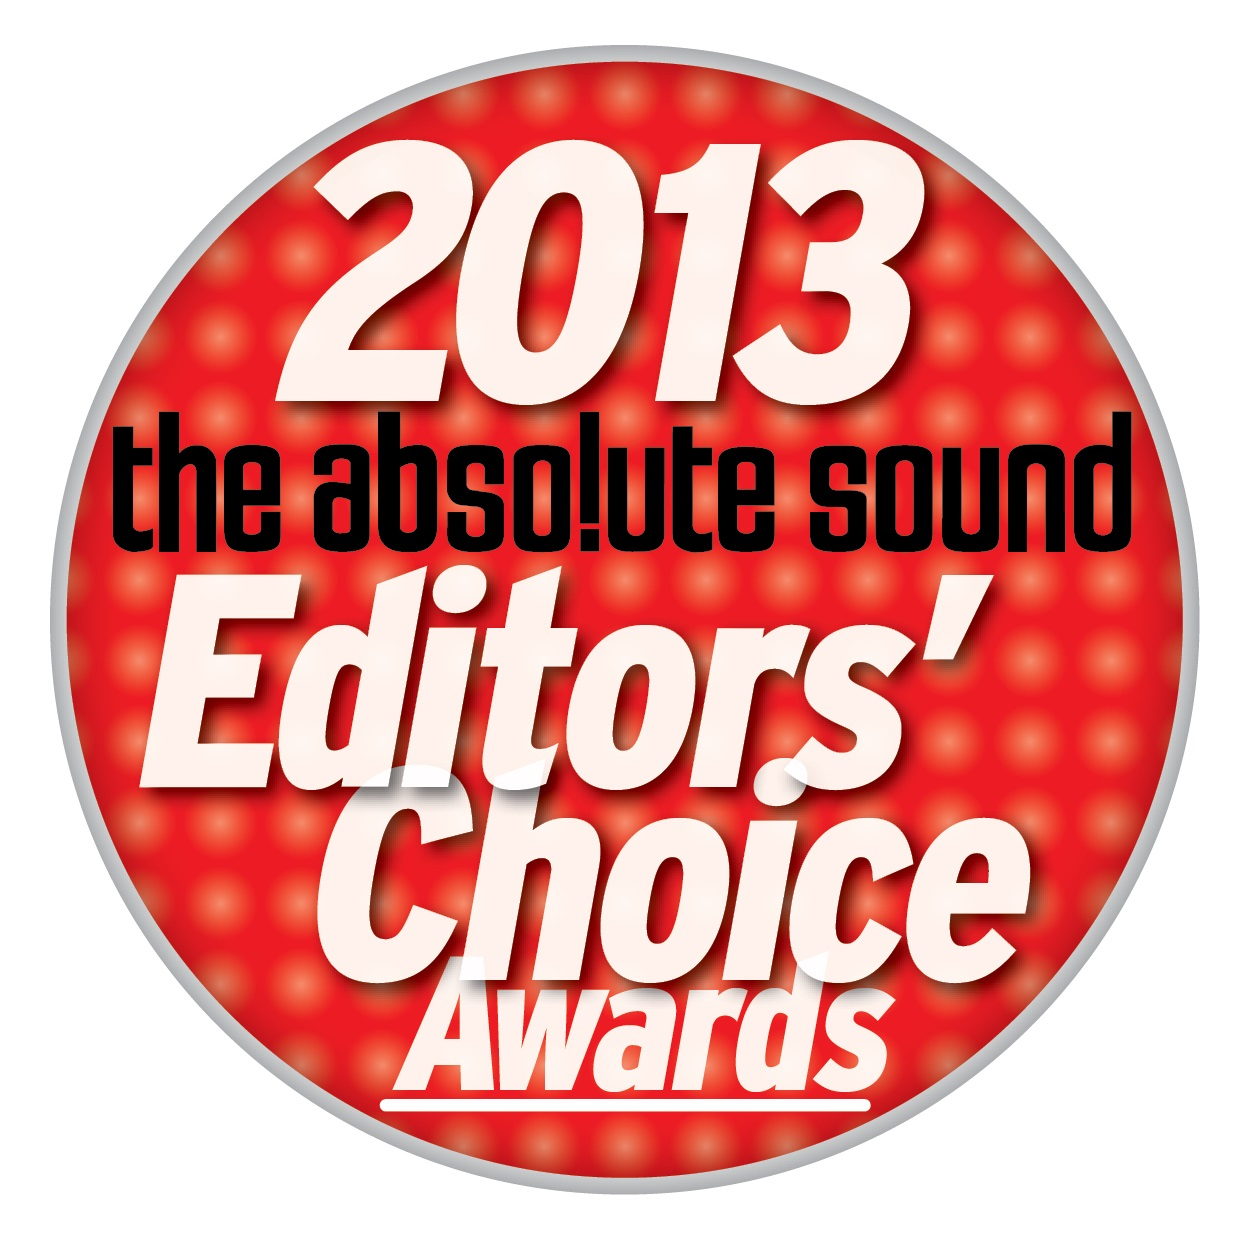 The Absolute Sound 2013 Editors' Choice